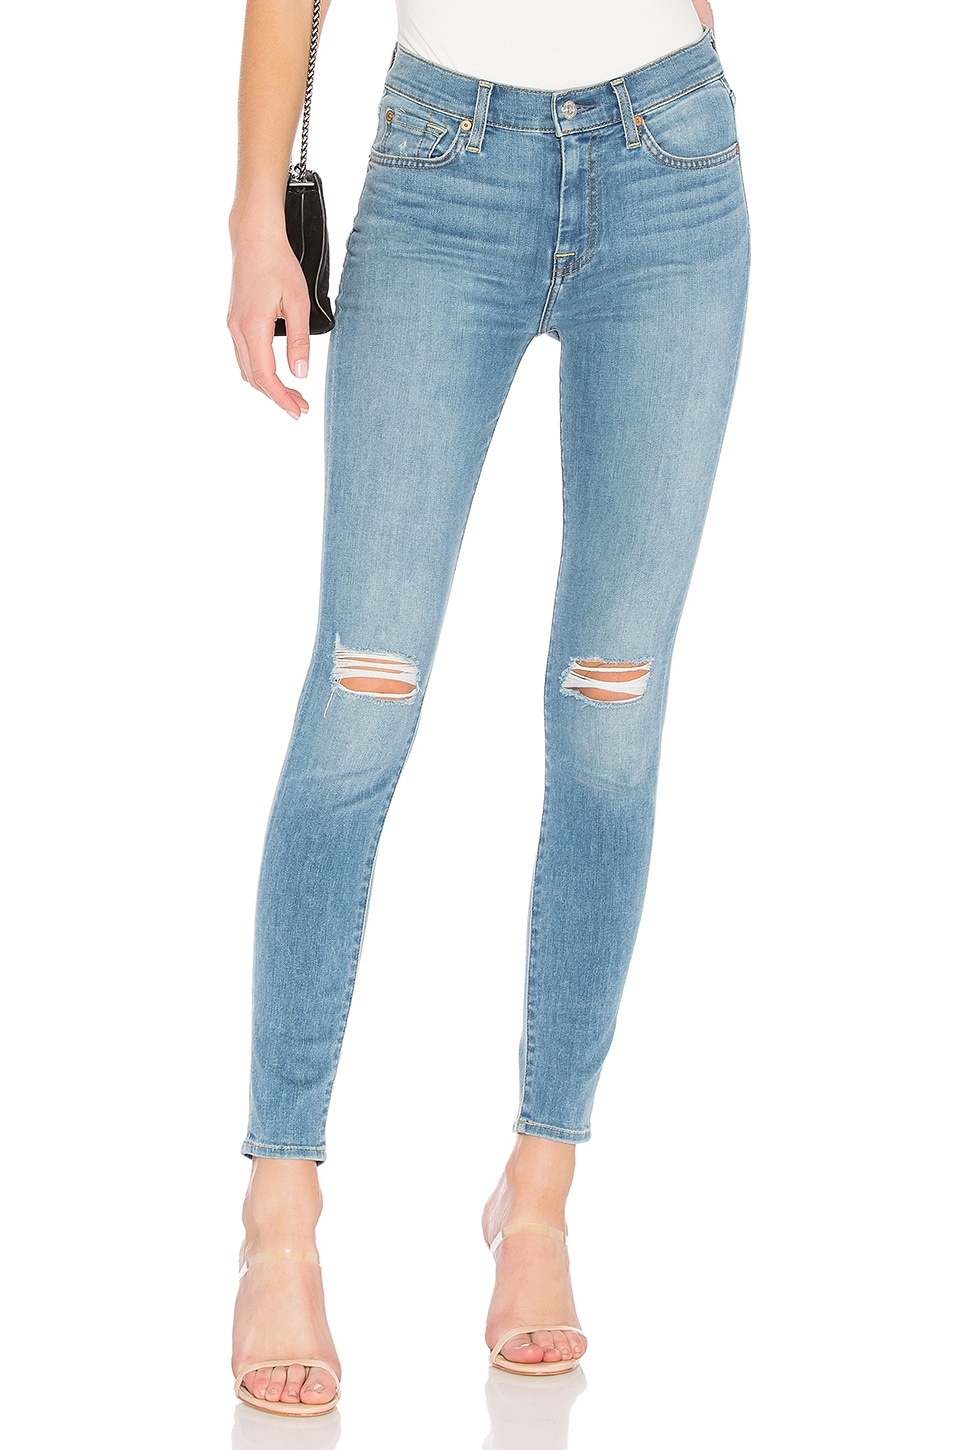 7 For All Mankind HW Skinny Jean in Bright Palms 2